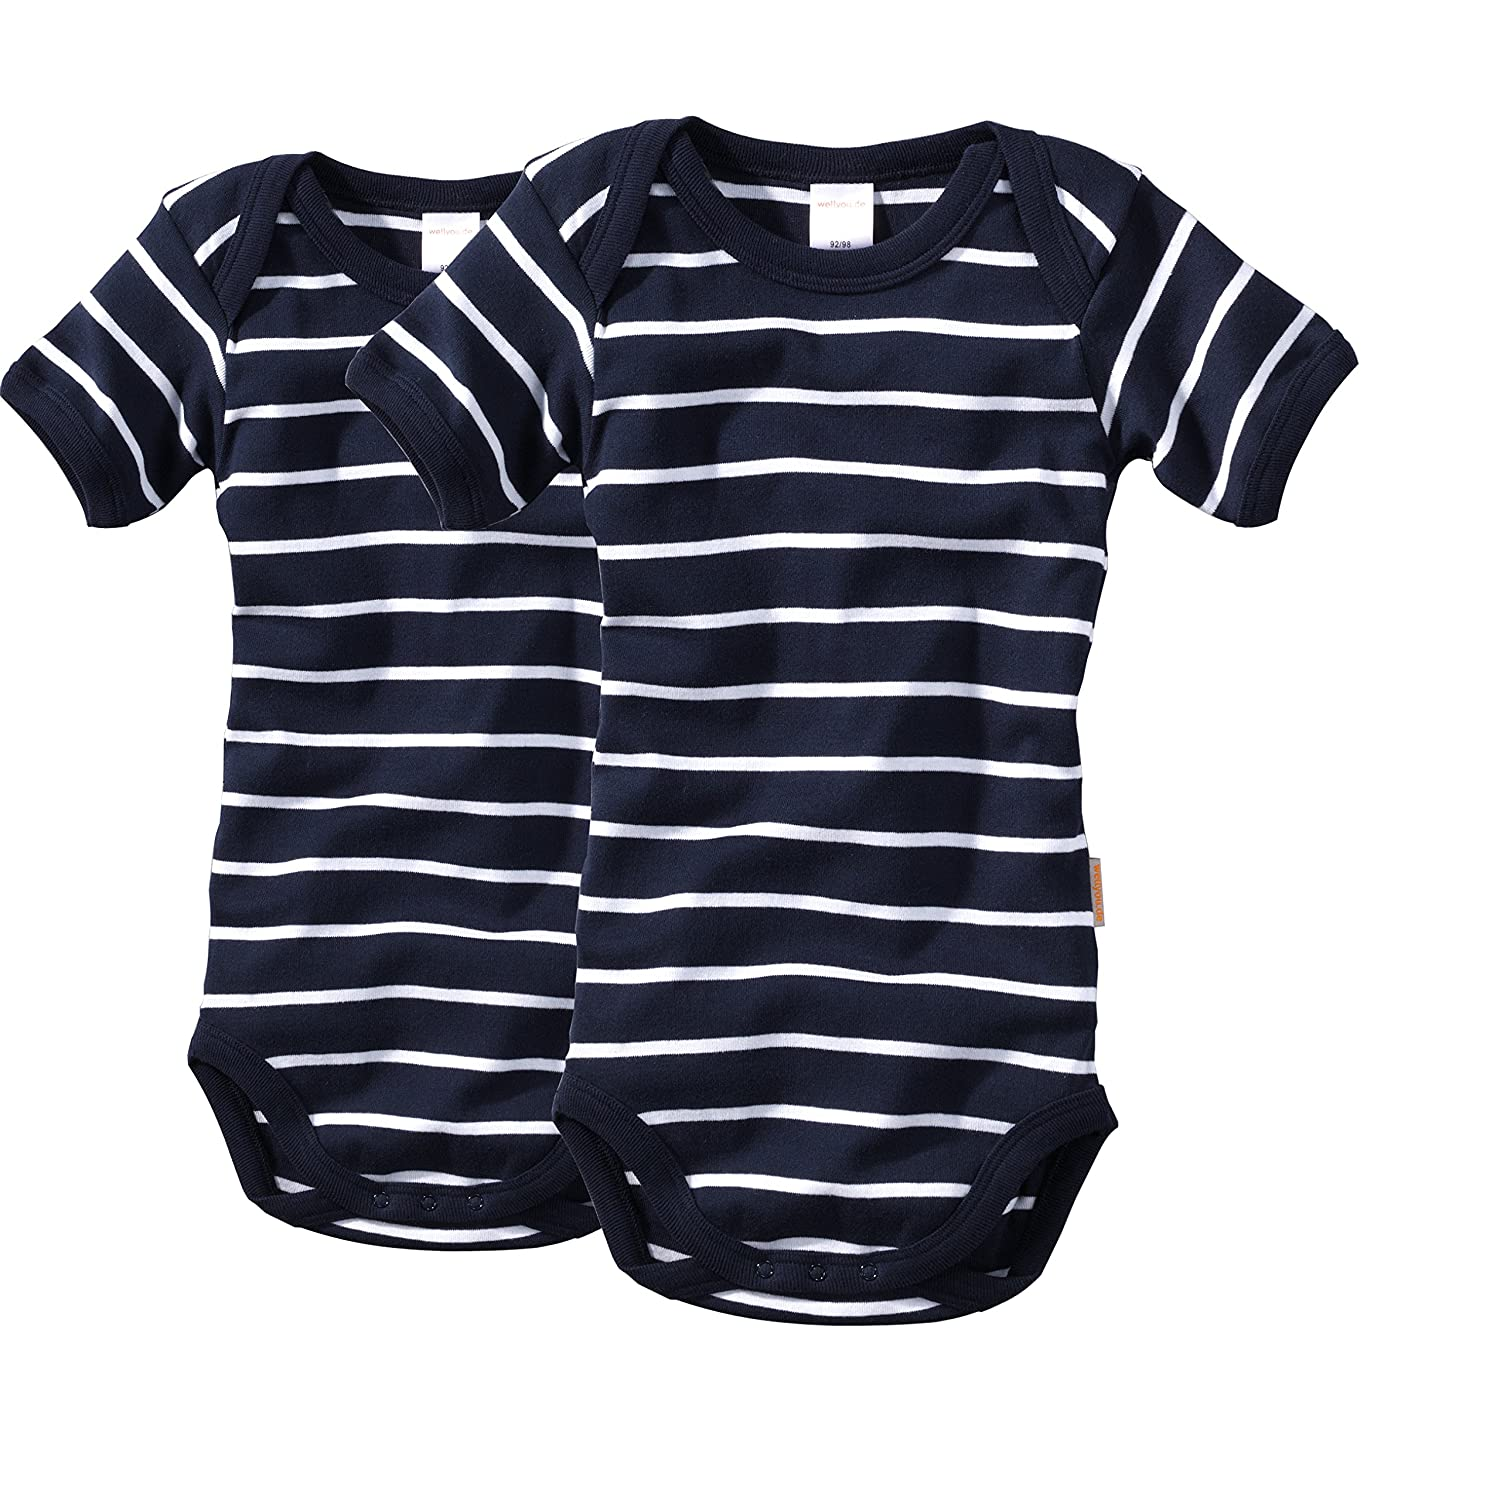 wellyou 2-Pack of Baby Todler Child Bodysuit Short Sleeved Dark Blue and White Loops